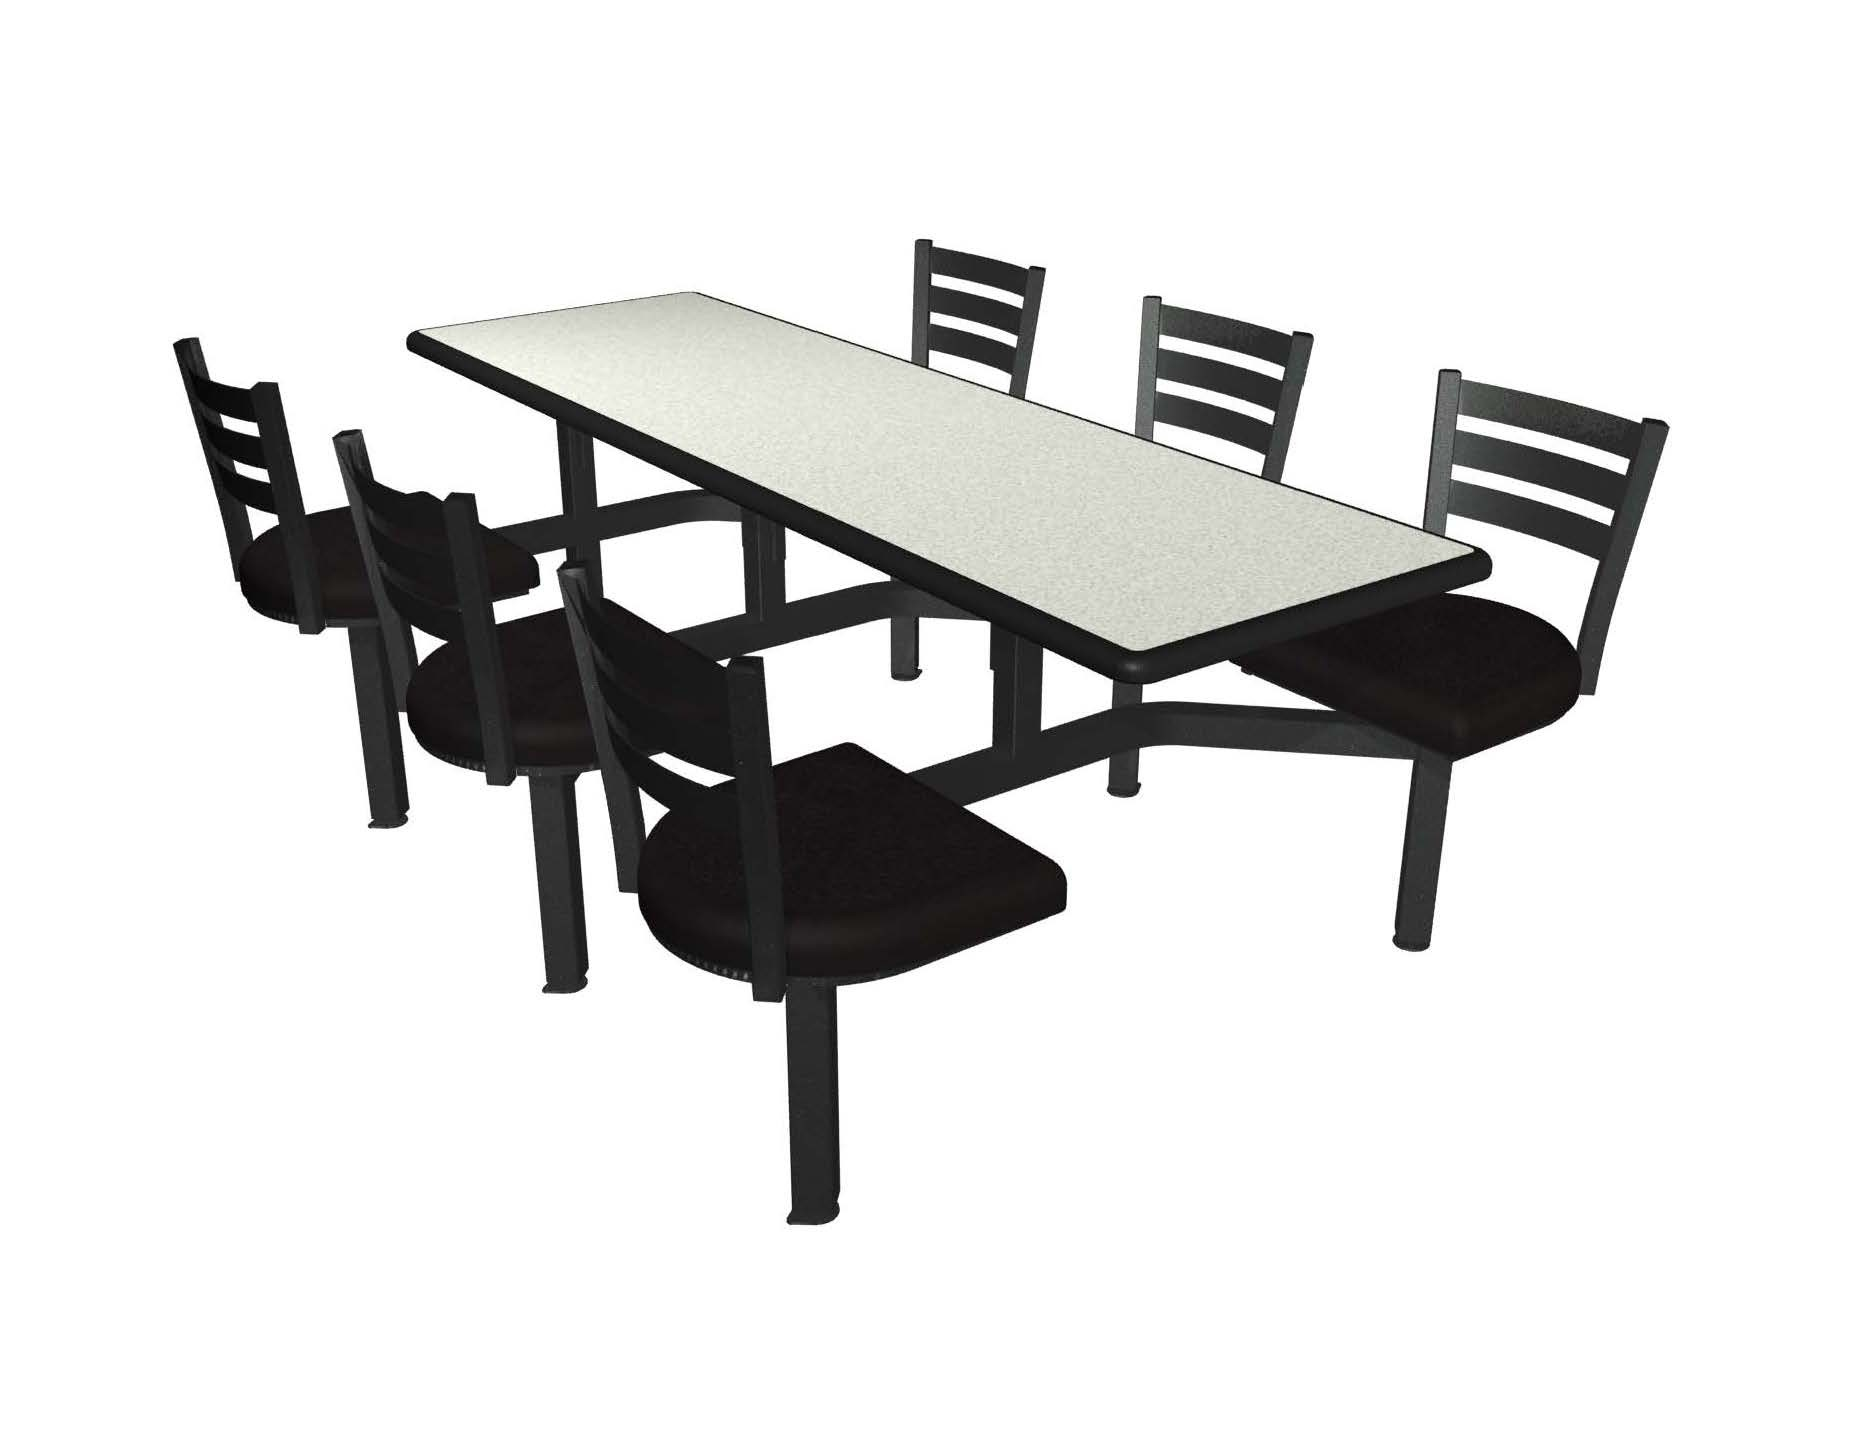 White Nebula laminate table top, Black Dur-A-Edge, black vinyl upholstered seat